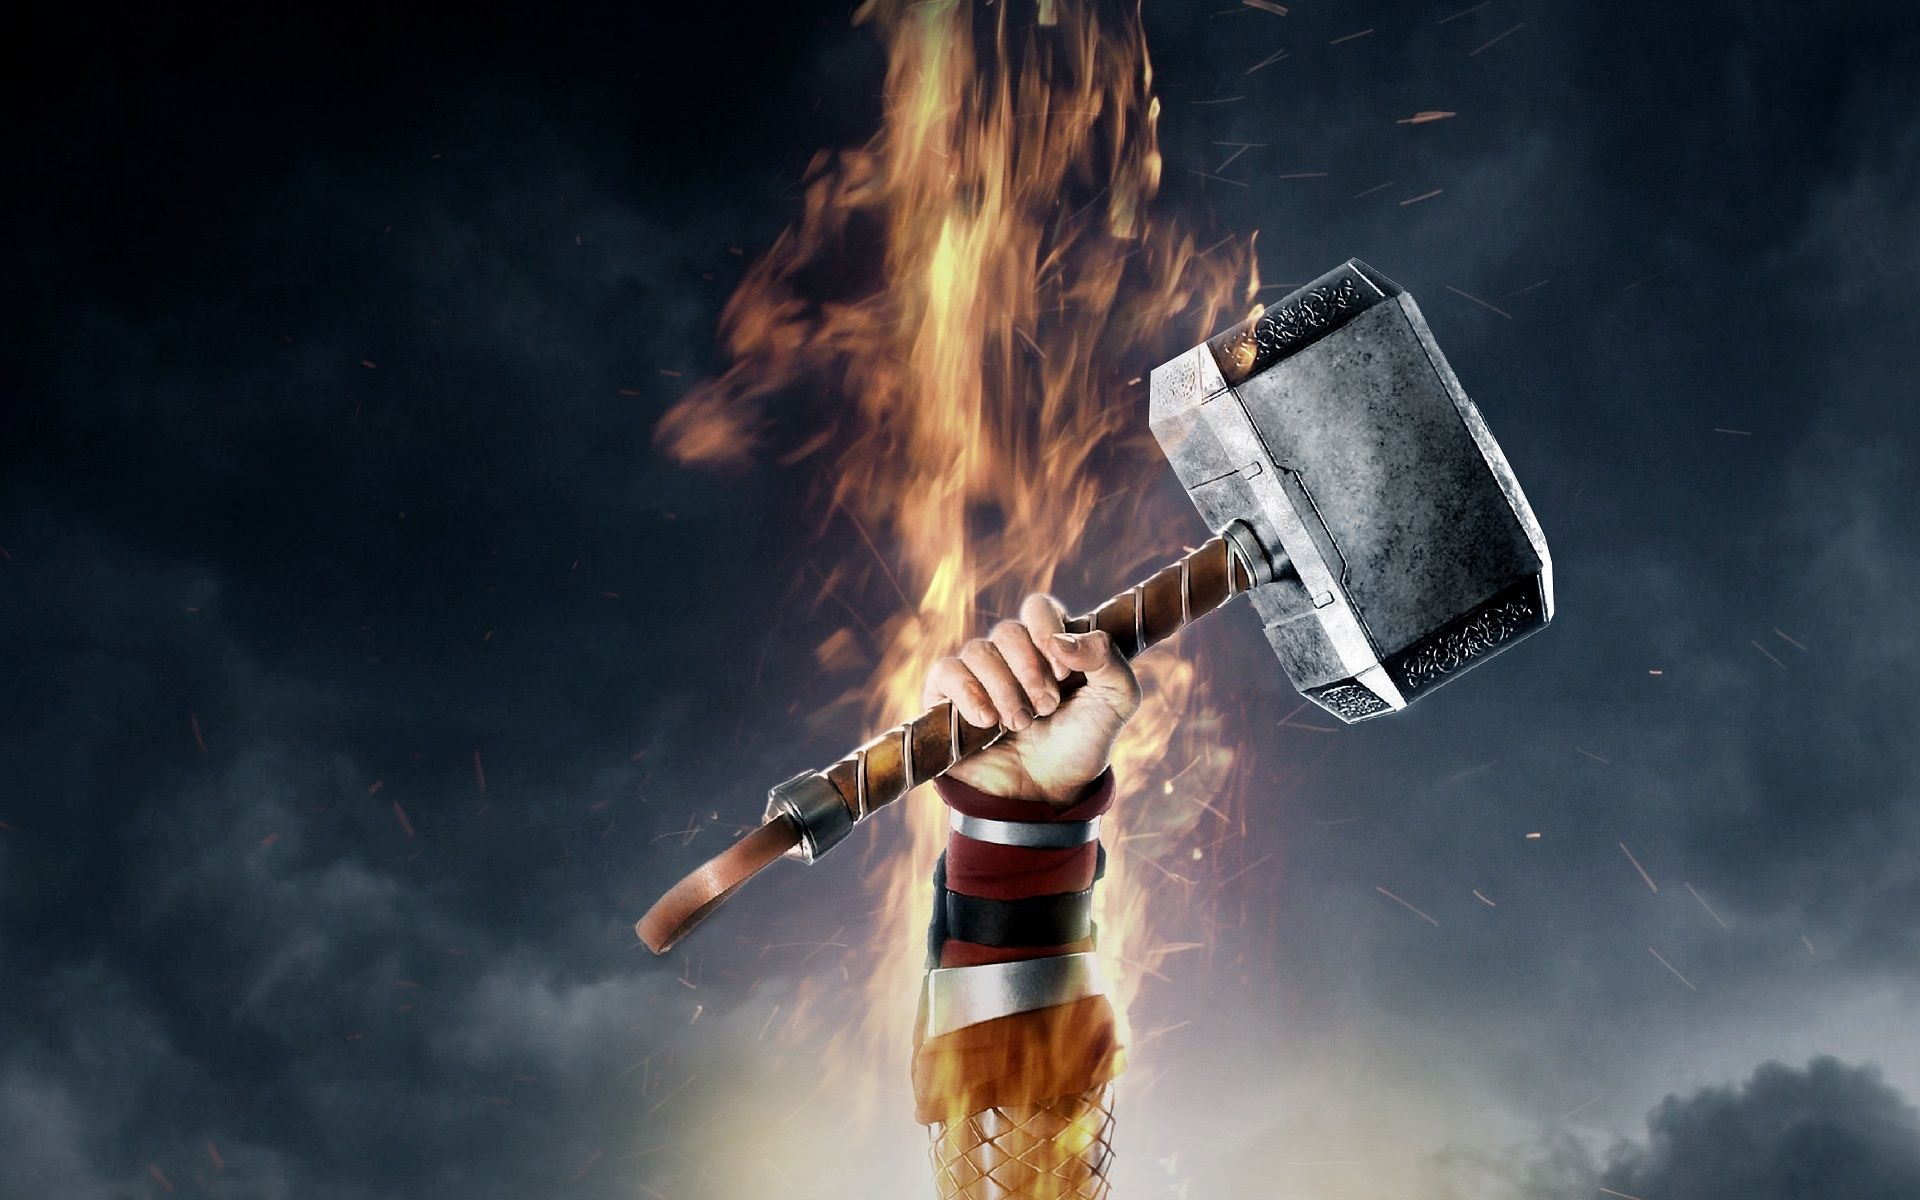 Thor Hammer Wallpapers Top Free Thor Hammer Backgrounds Wallpaperaccess